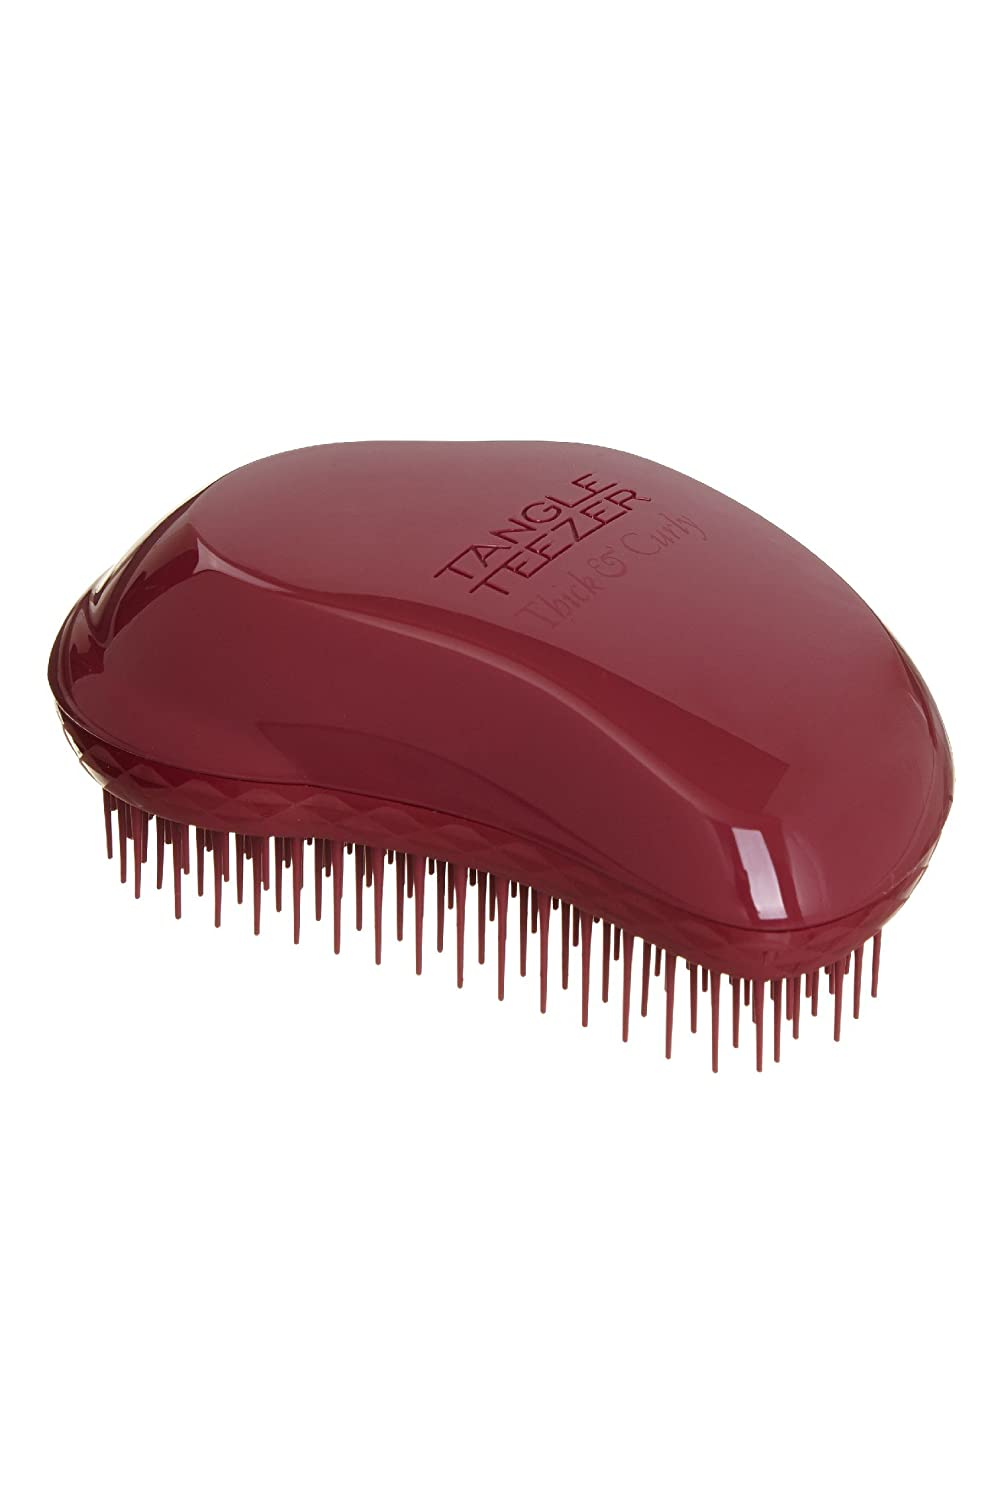 Tangle Teezer Thick and Curly Detangling Hairbrush, Maroon Mood TC-DR-010216 16267_Blanco